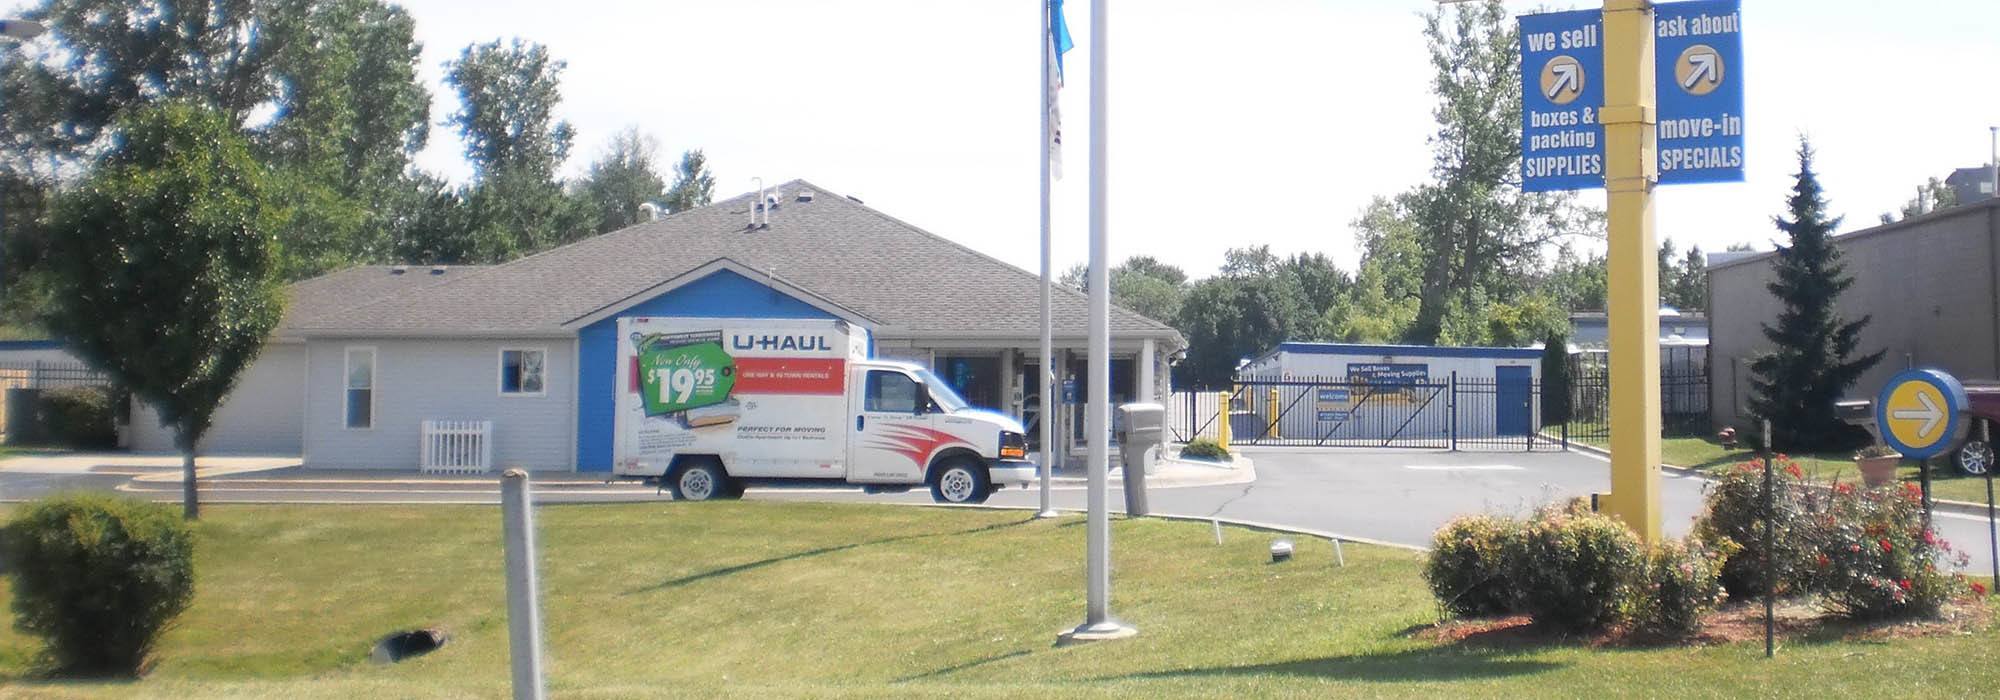 Self storage in Fraser MI